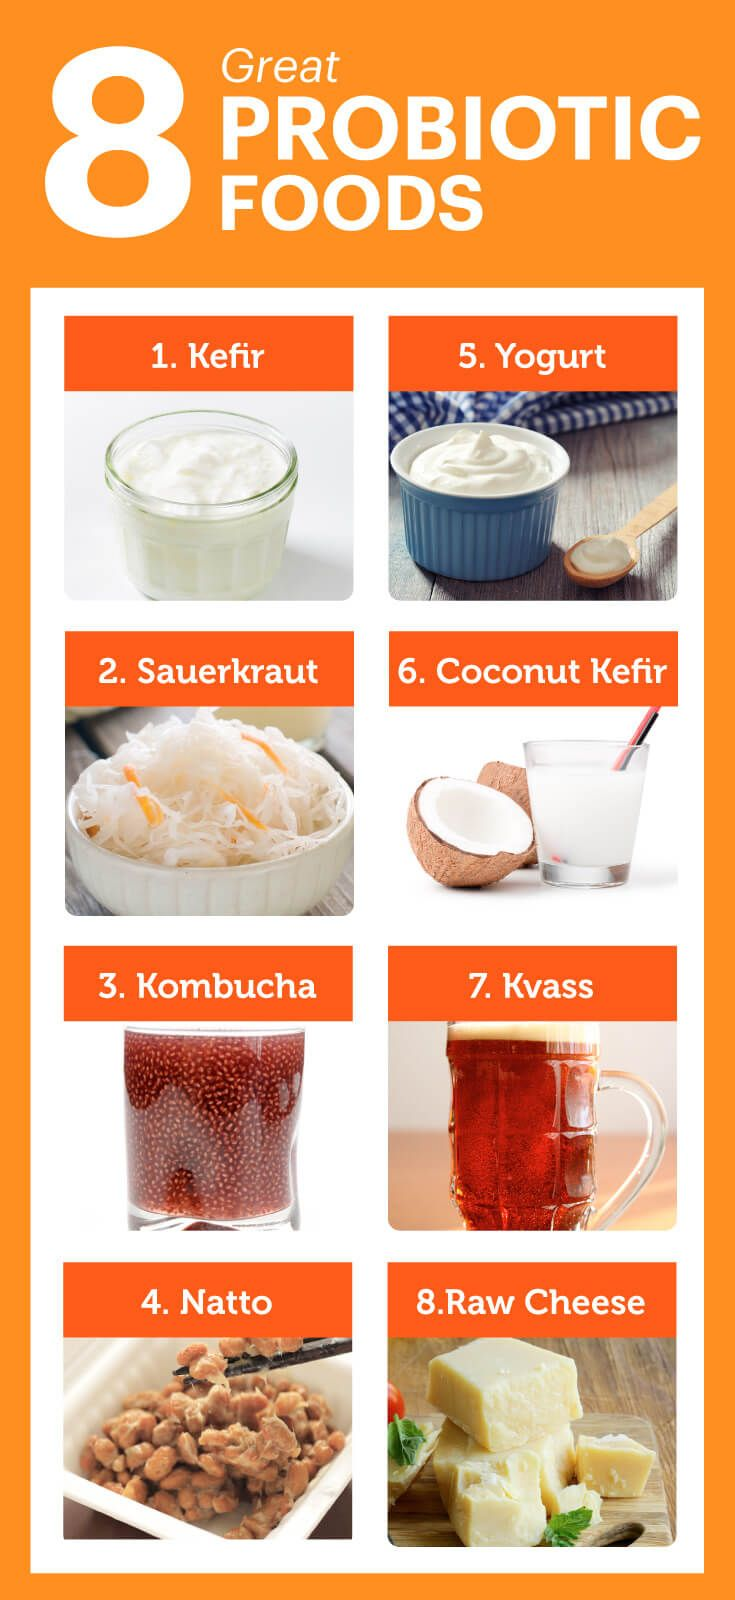 Probiotic Food Products